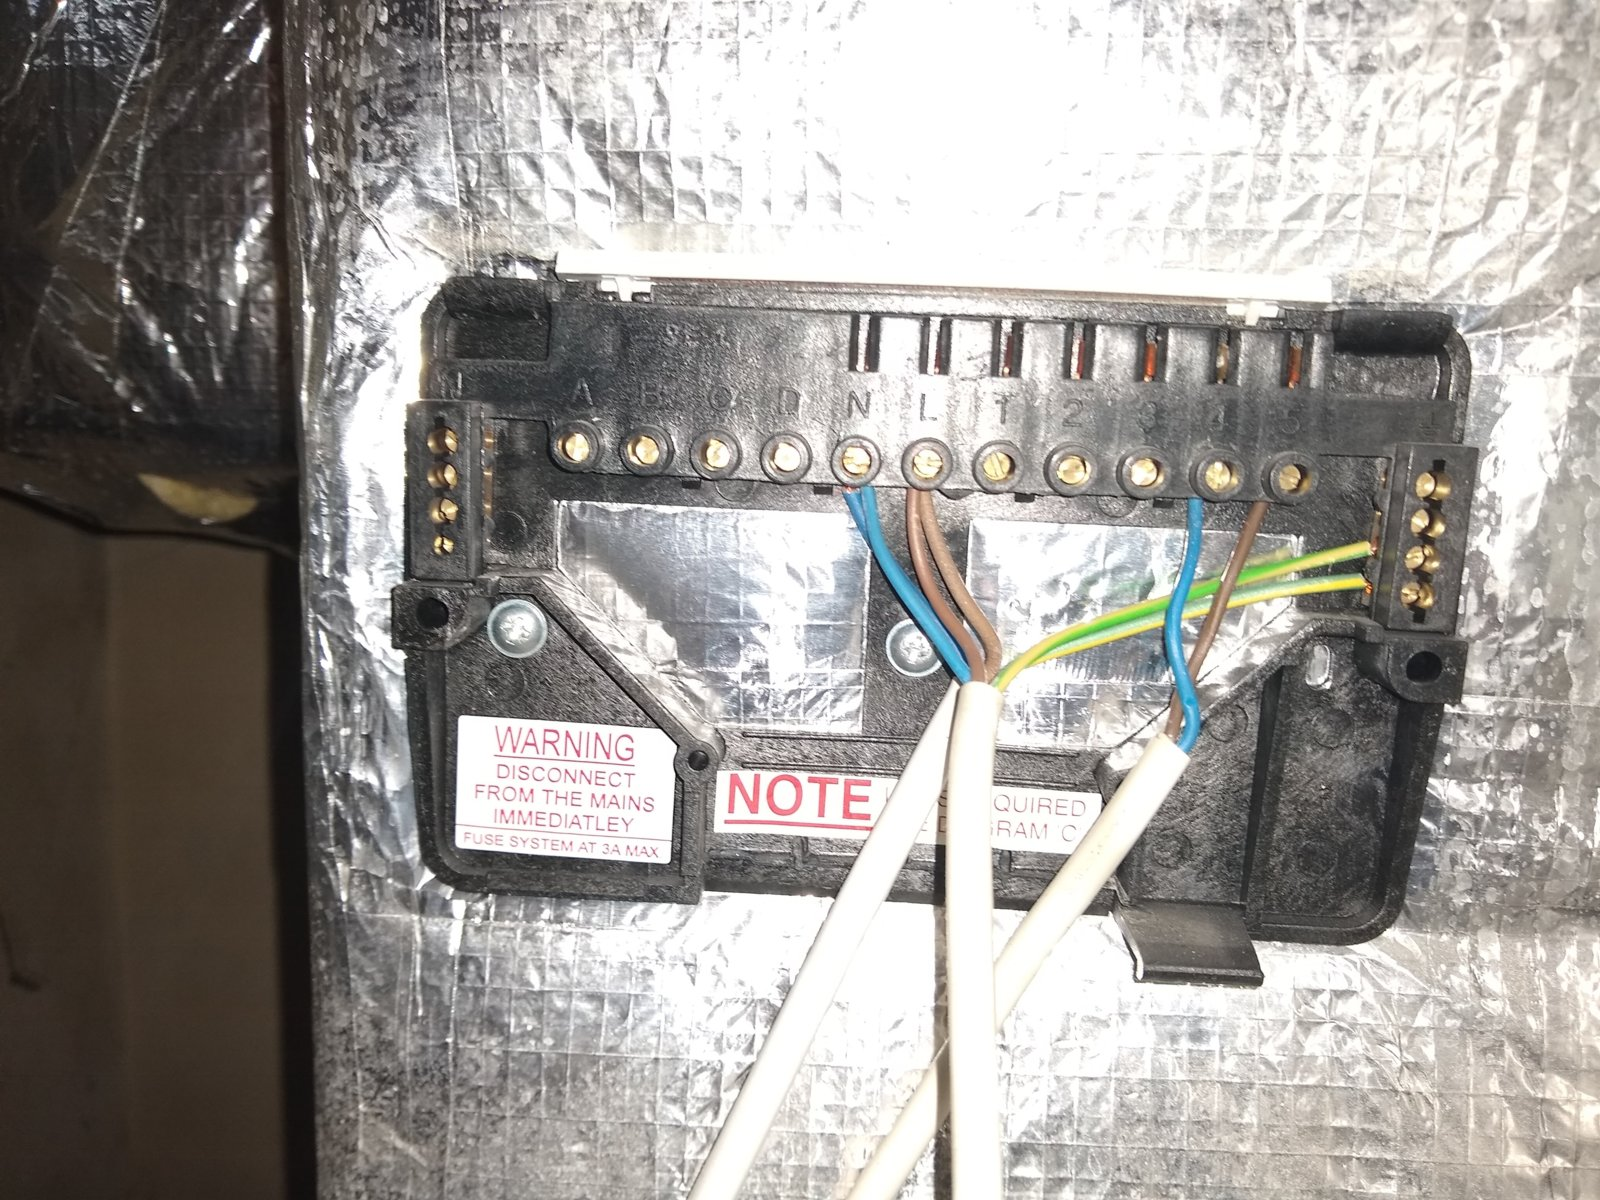 Potterton Ep4002 And Hive Active Replacement Help